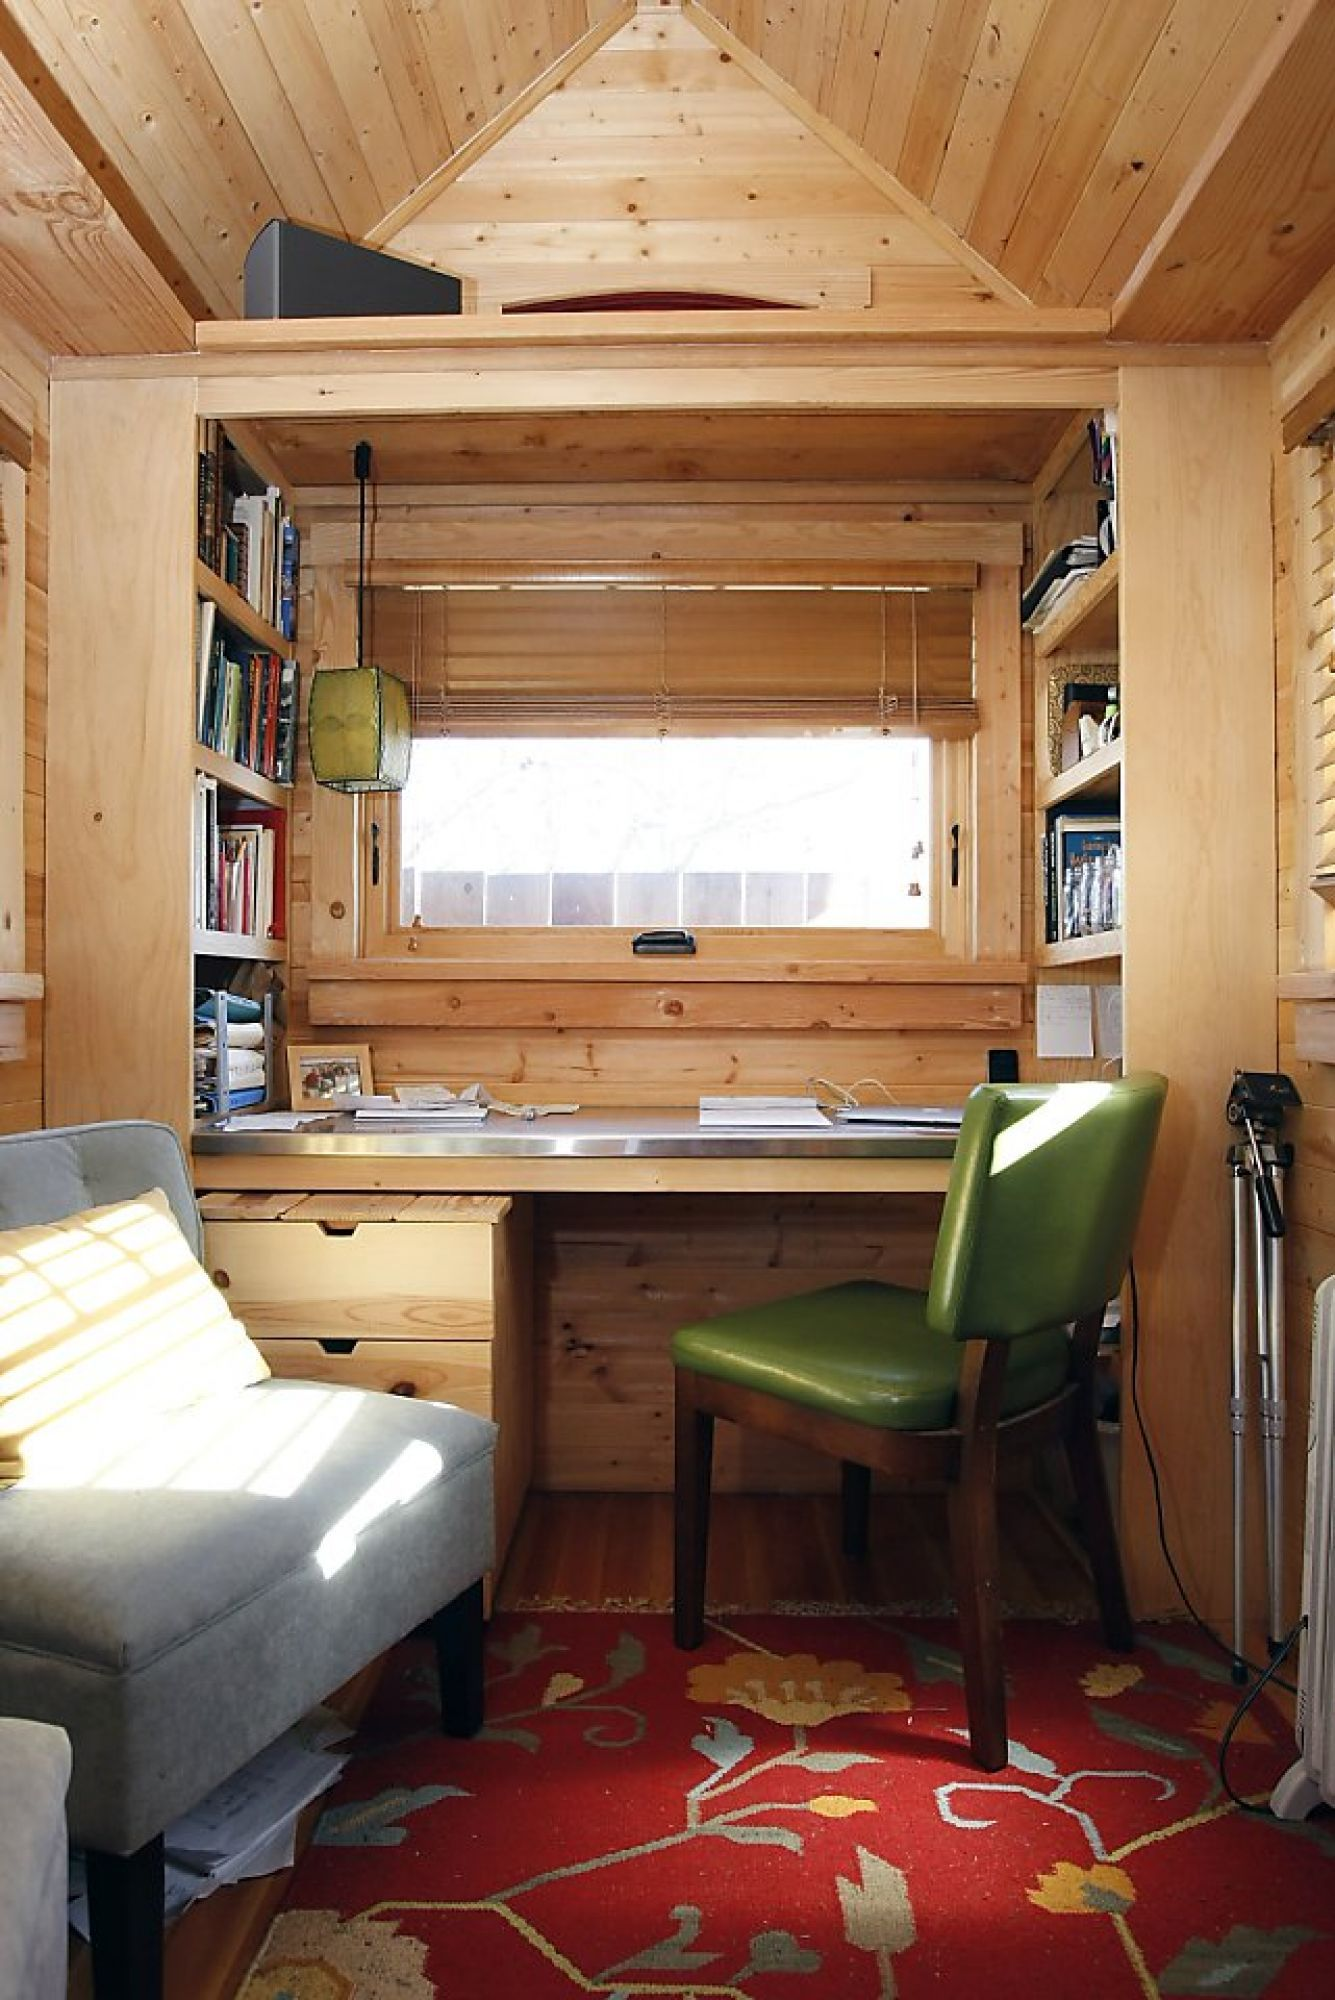 Small House Movement Living In 120 Square Feet Small House Movement Tiny House Living Tiny House Bathroom